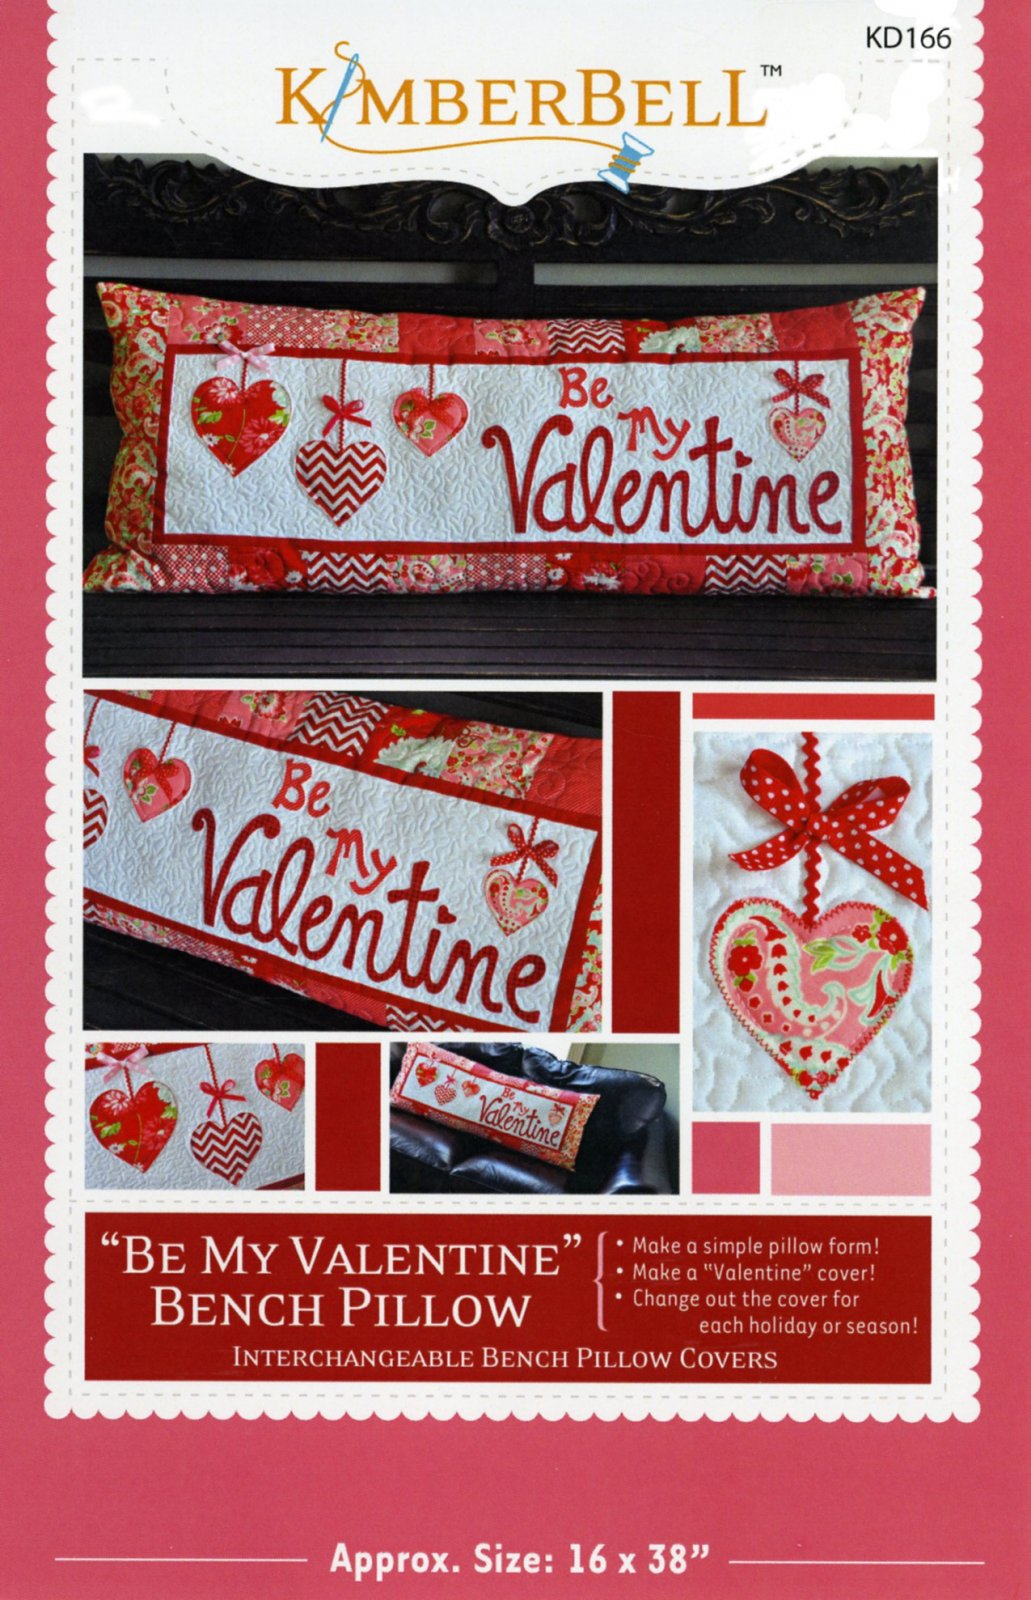 Kimberbell Bench Pillow - Be My Valentine